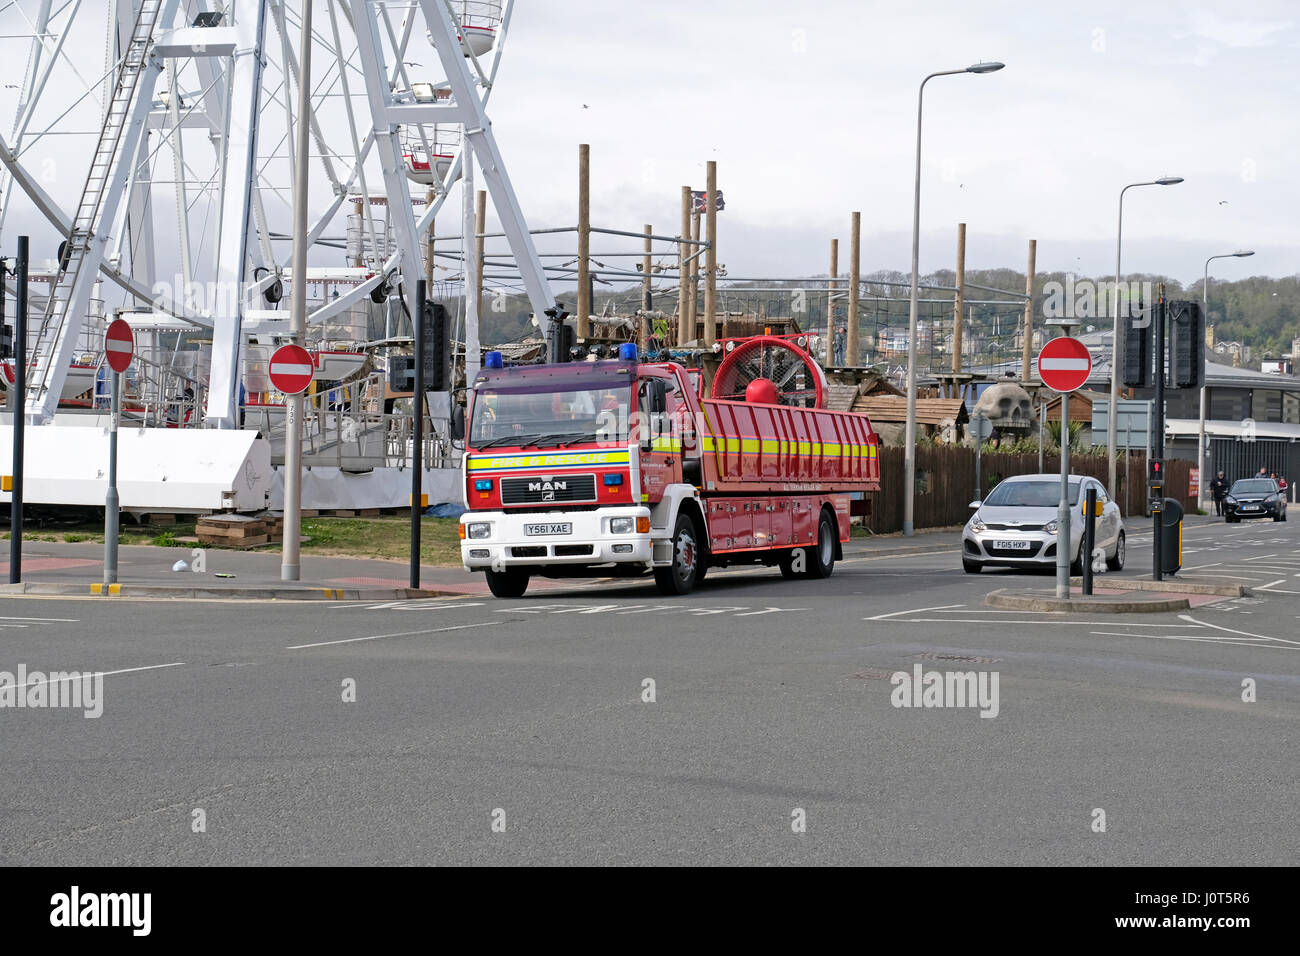 Weston-super-Mare, UK. 16th April, 2017. Avon Fire and Rescue's all terrain rescue unit answers an emergency call. - Stock Image